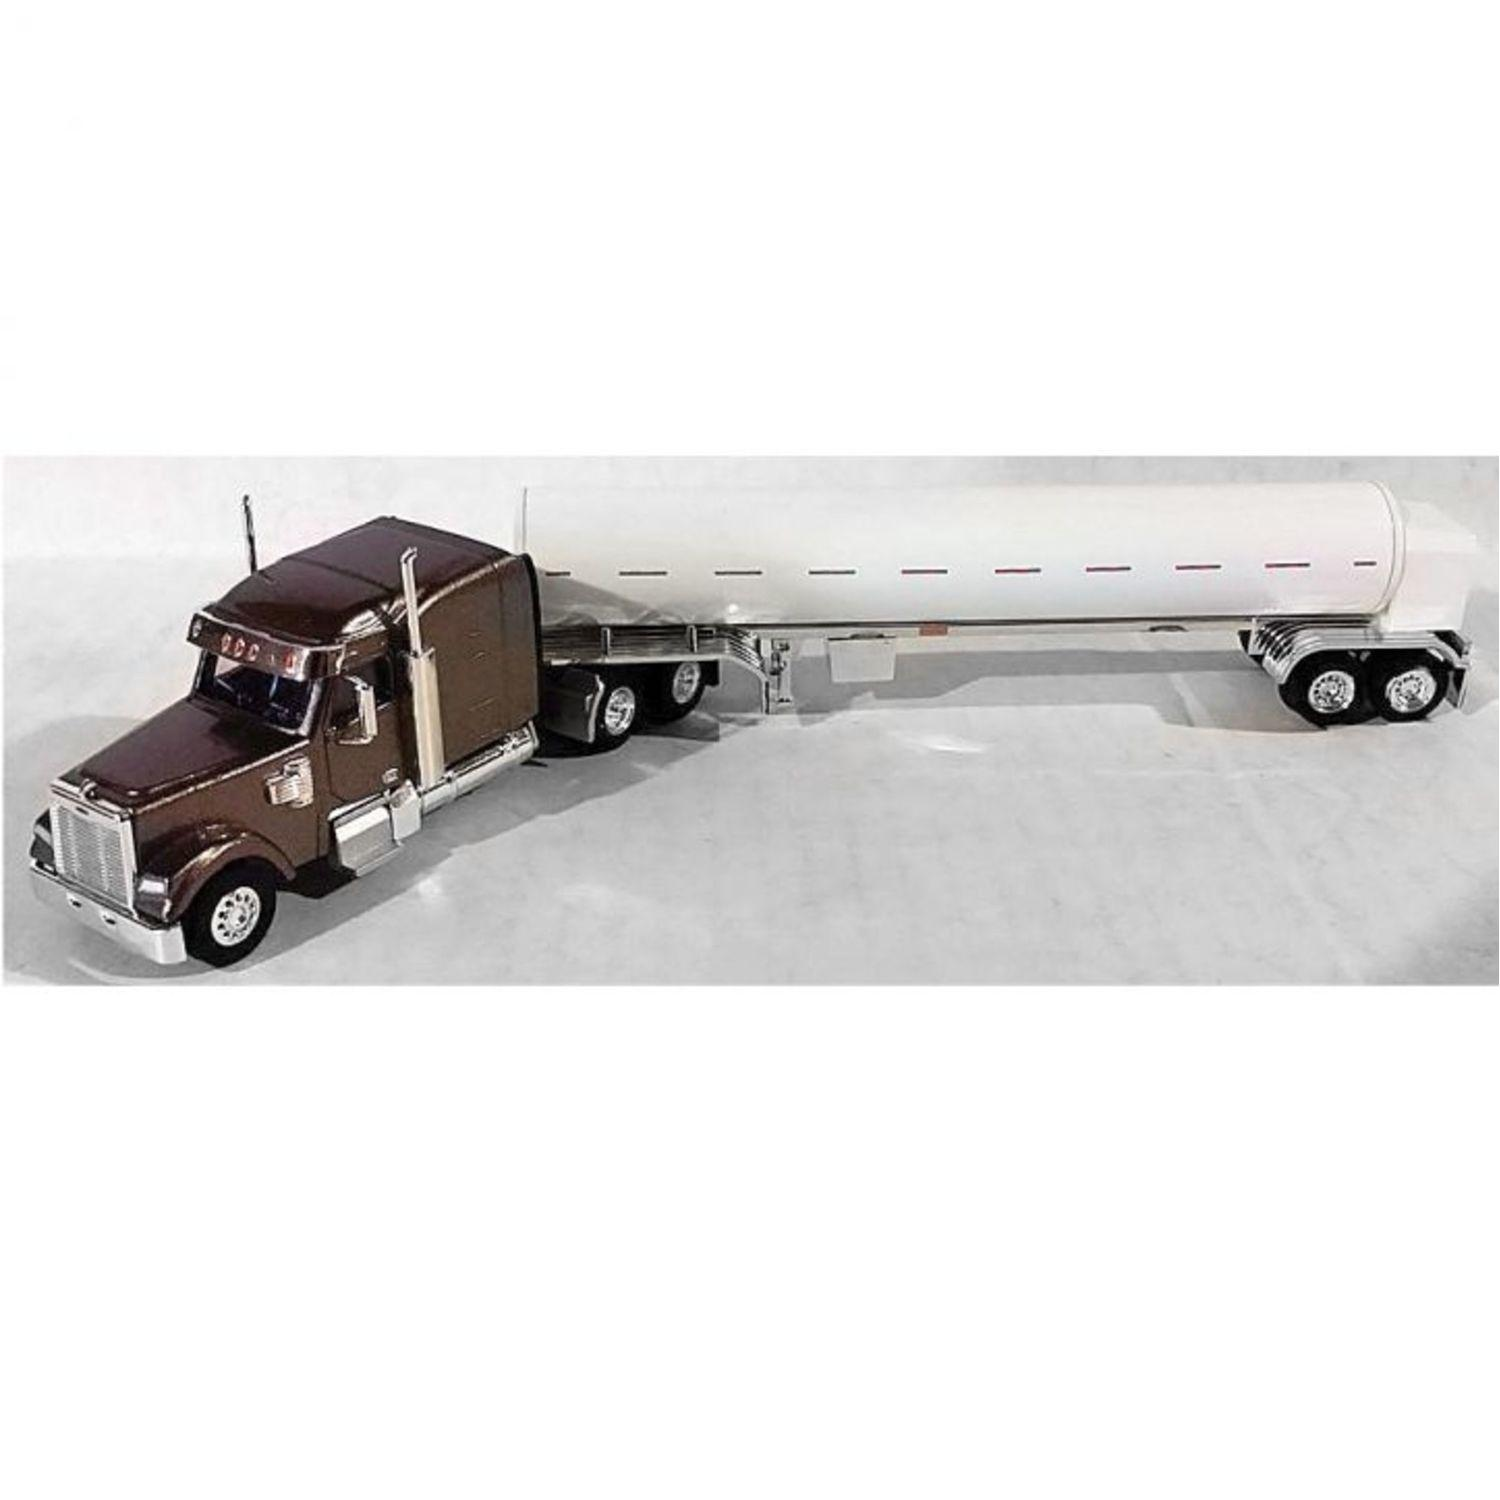 H0 Coronado Mid-Roof Tractor w/Cryo Tank Trailer - Assembled